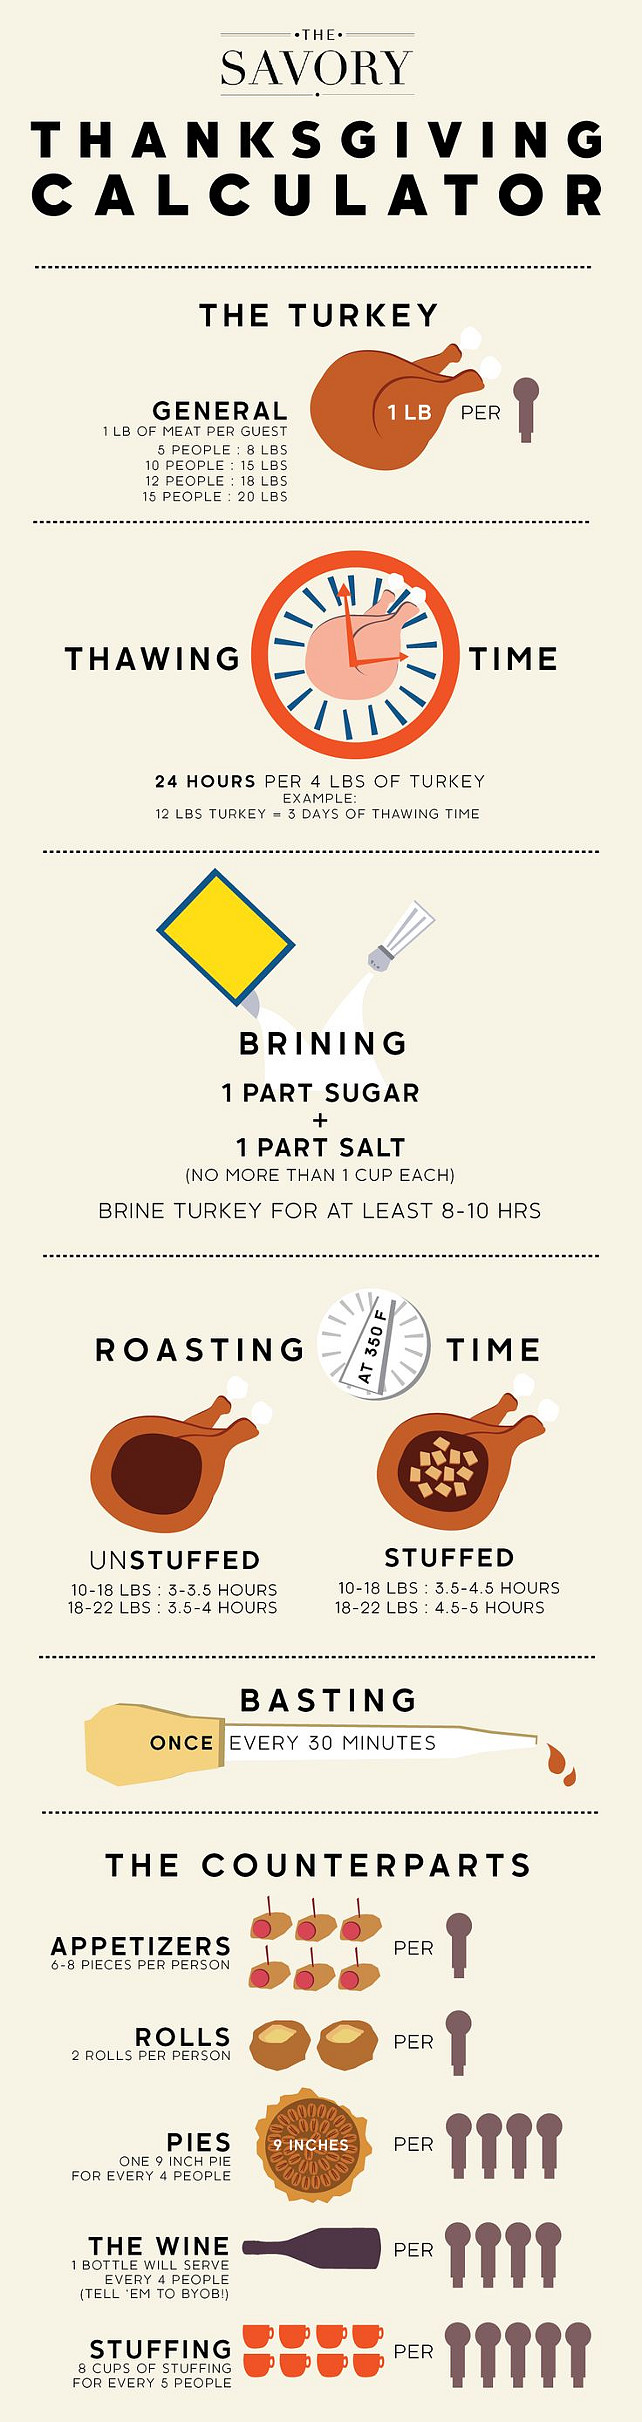 Thanksgiving Calculator. Caculate how much food to make for Thanksgiving. #Thanksgiving #ThanksgivingFood